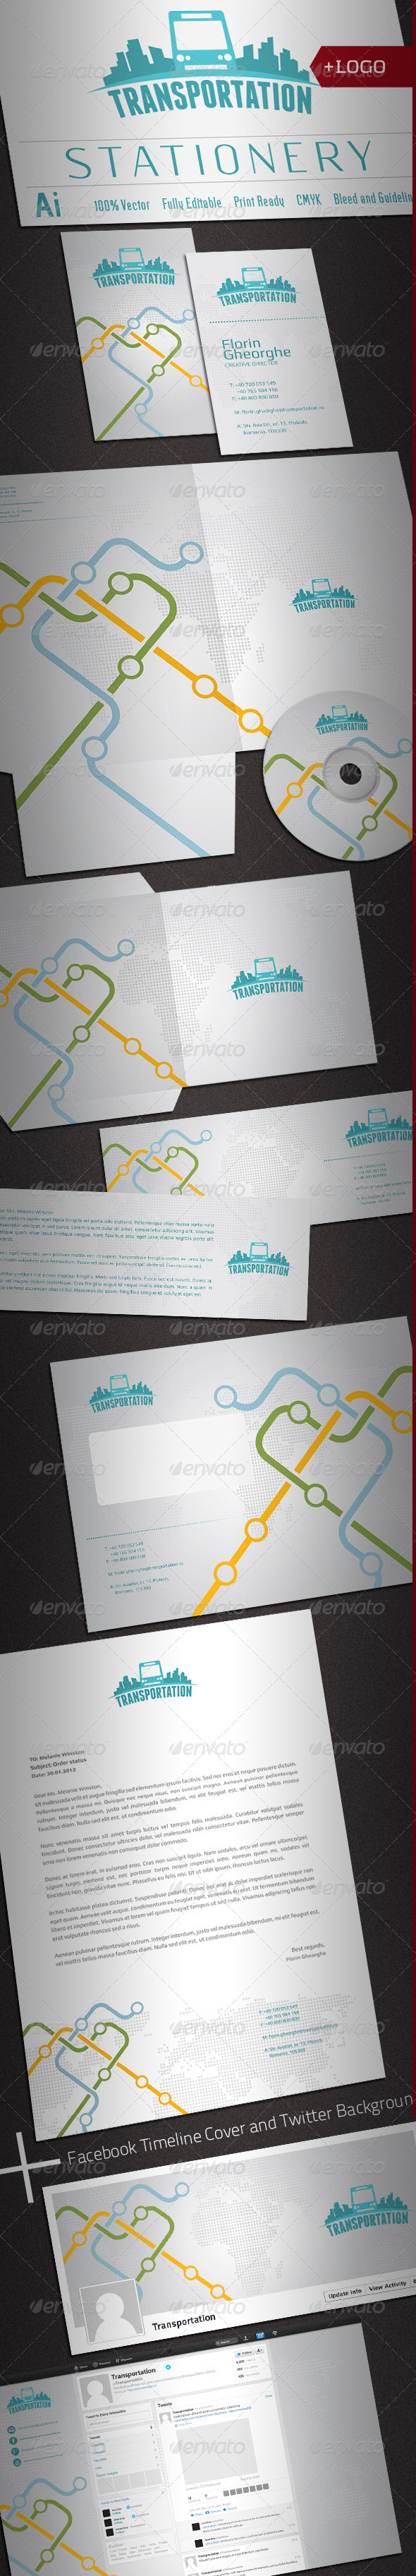 Passenger Transportation Stationery - Stationery Print Templates